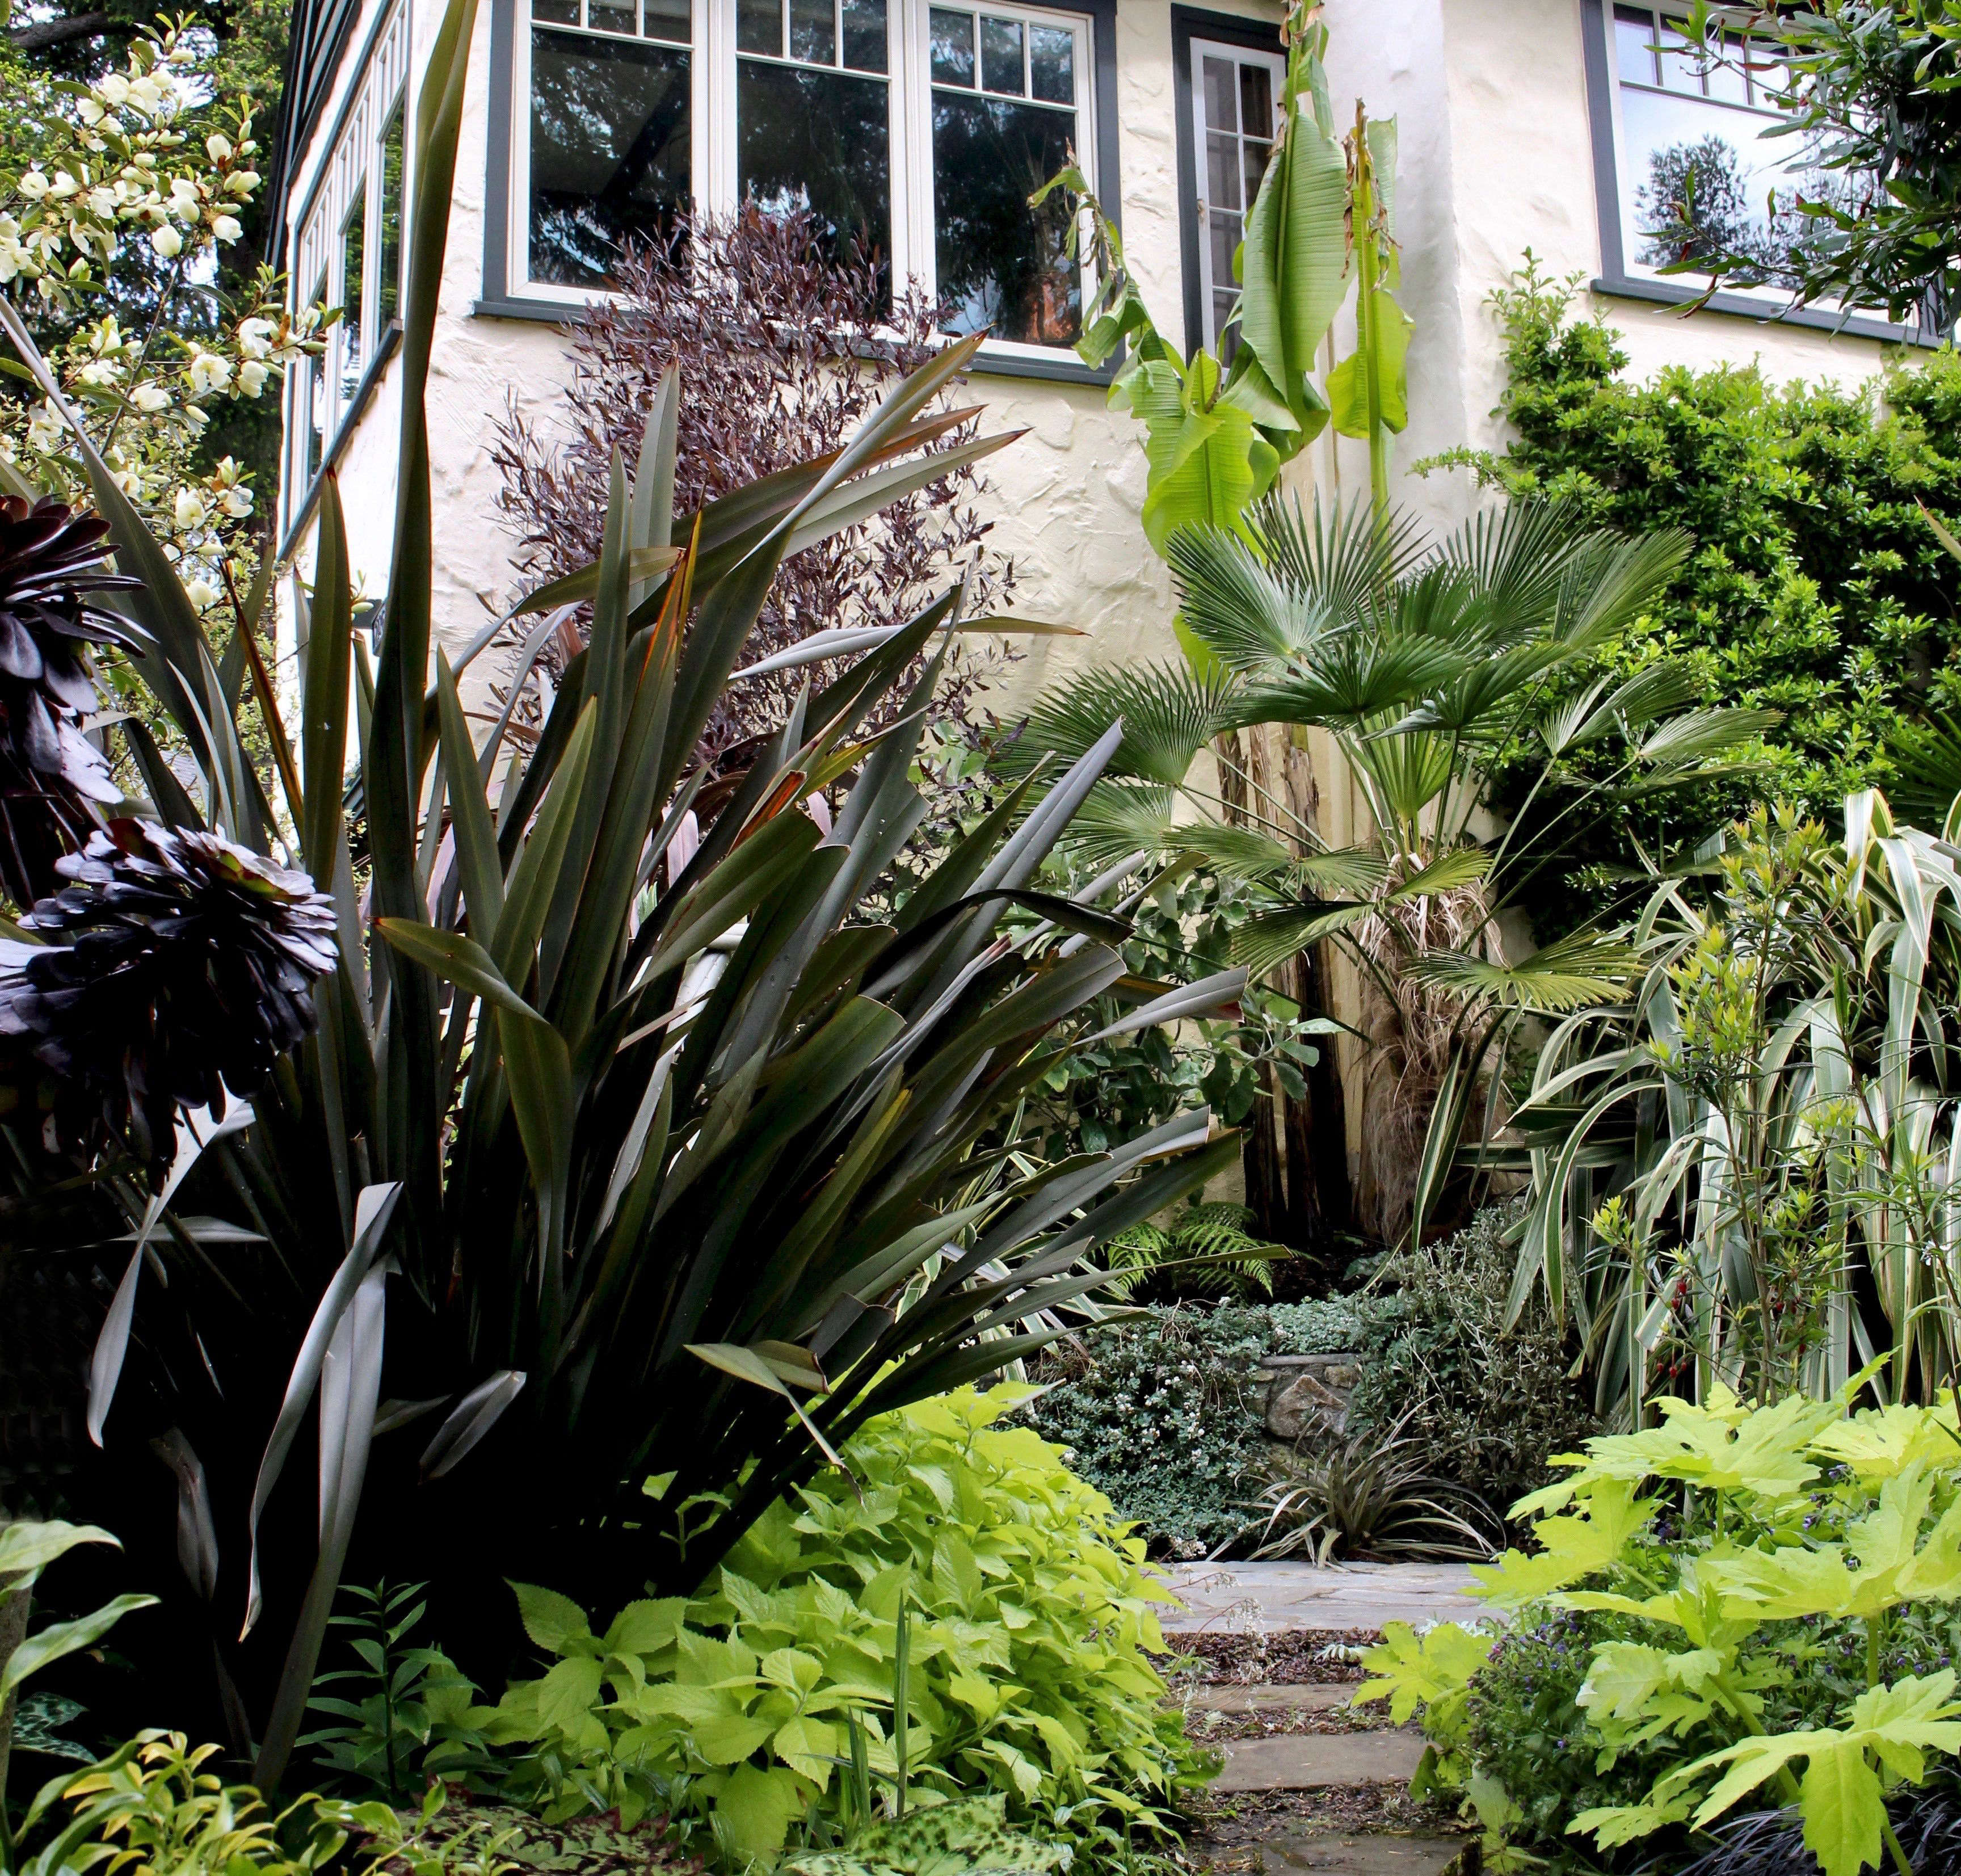 The New Canadian Garden: Tropical Plants In British